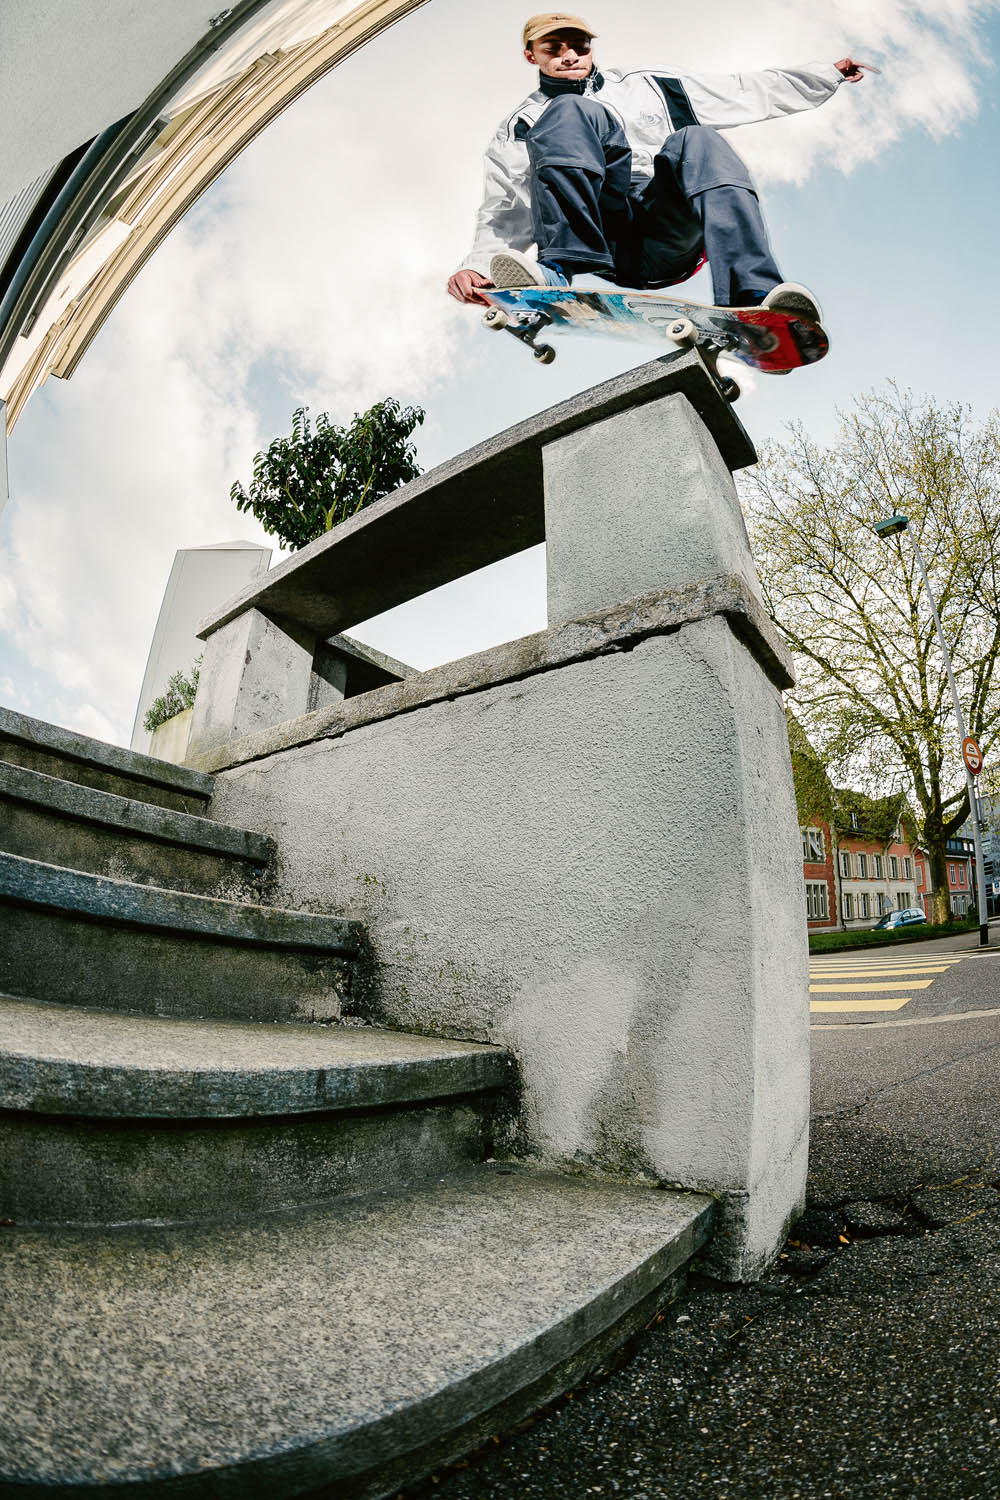 Mikey_BsNG-Tailgrab_Aarau_1704